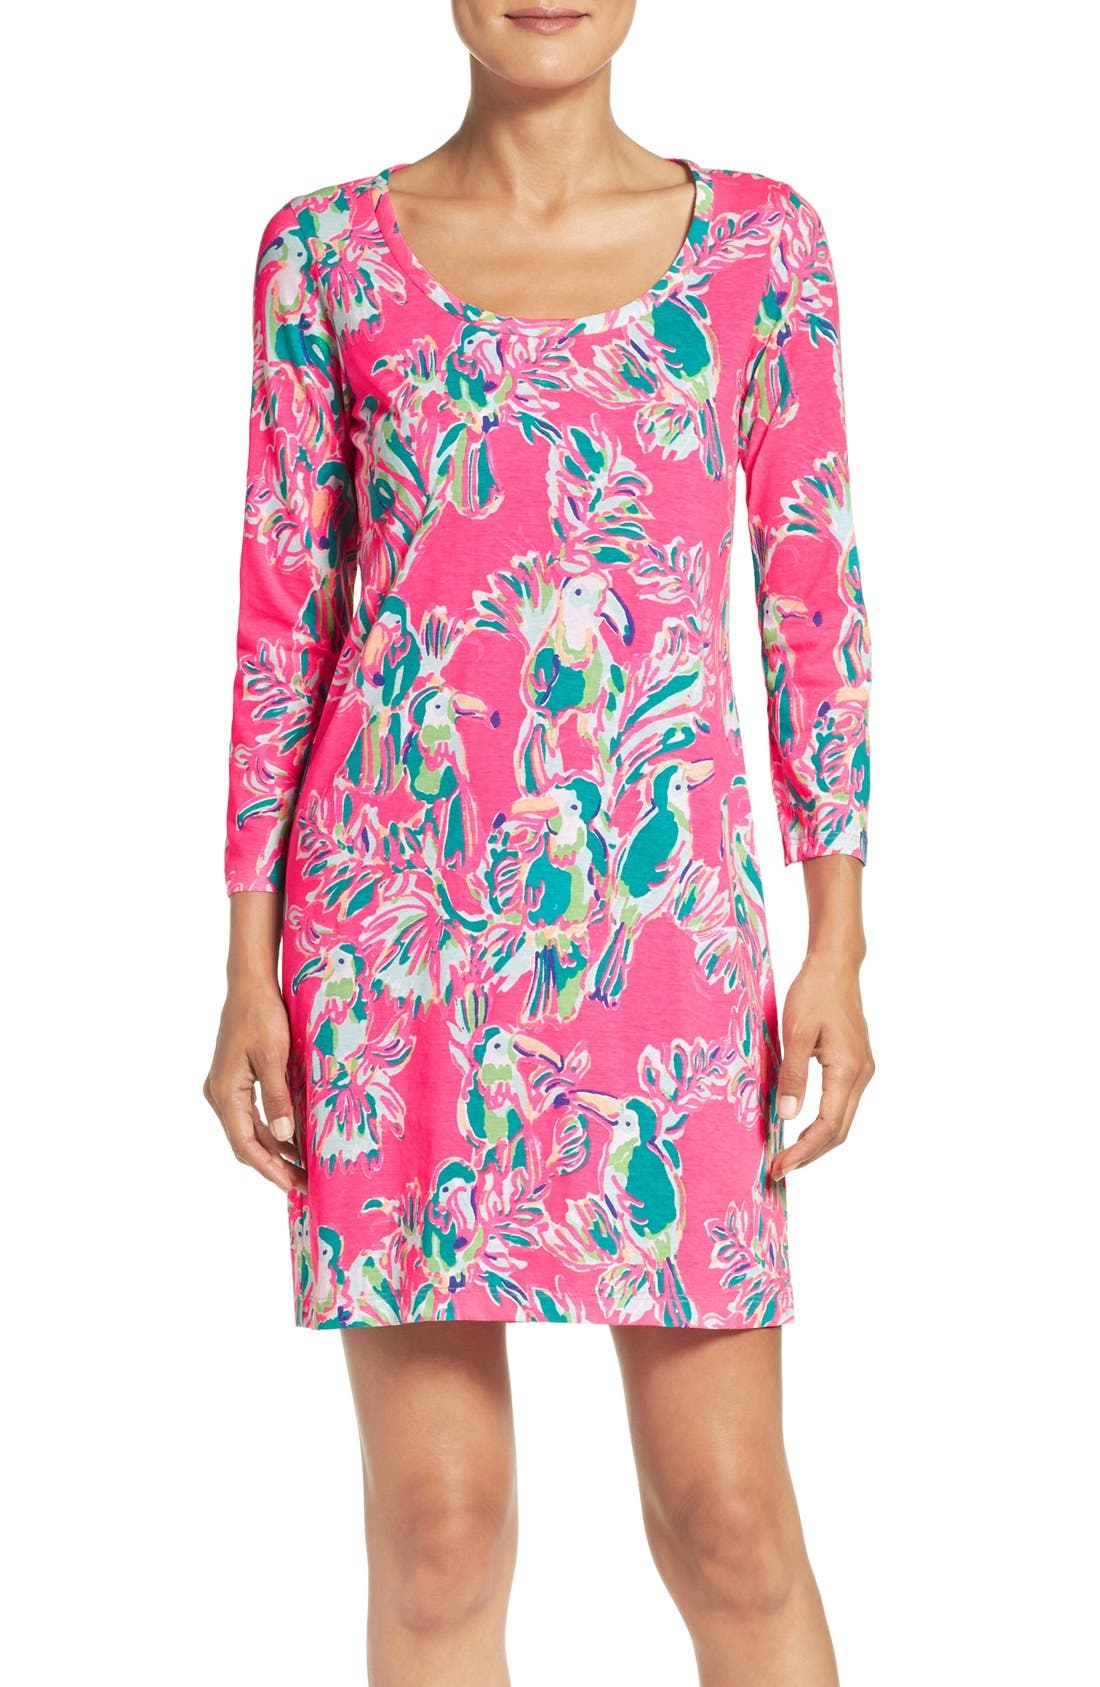 Alternate Image 1 Selected - Lilly Pulitzer® 'Beacon' Print Pima Cotton Dress